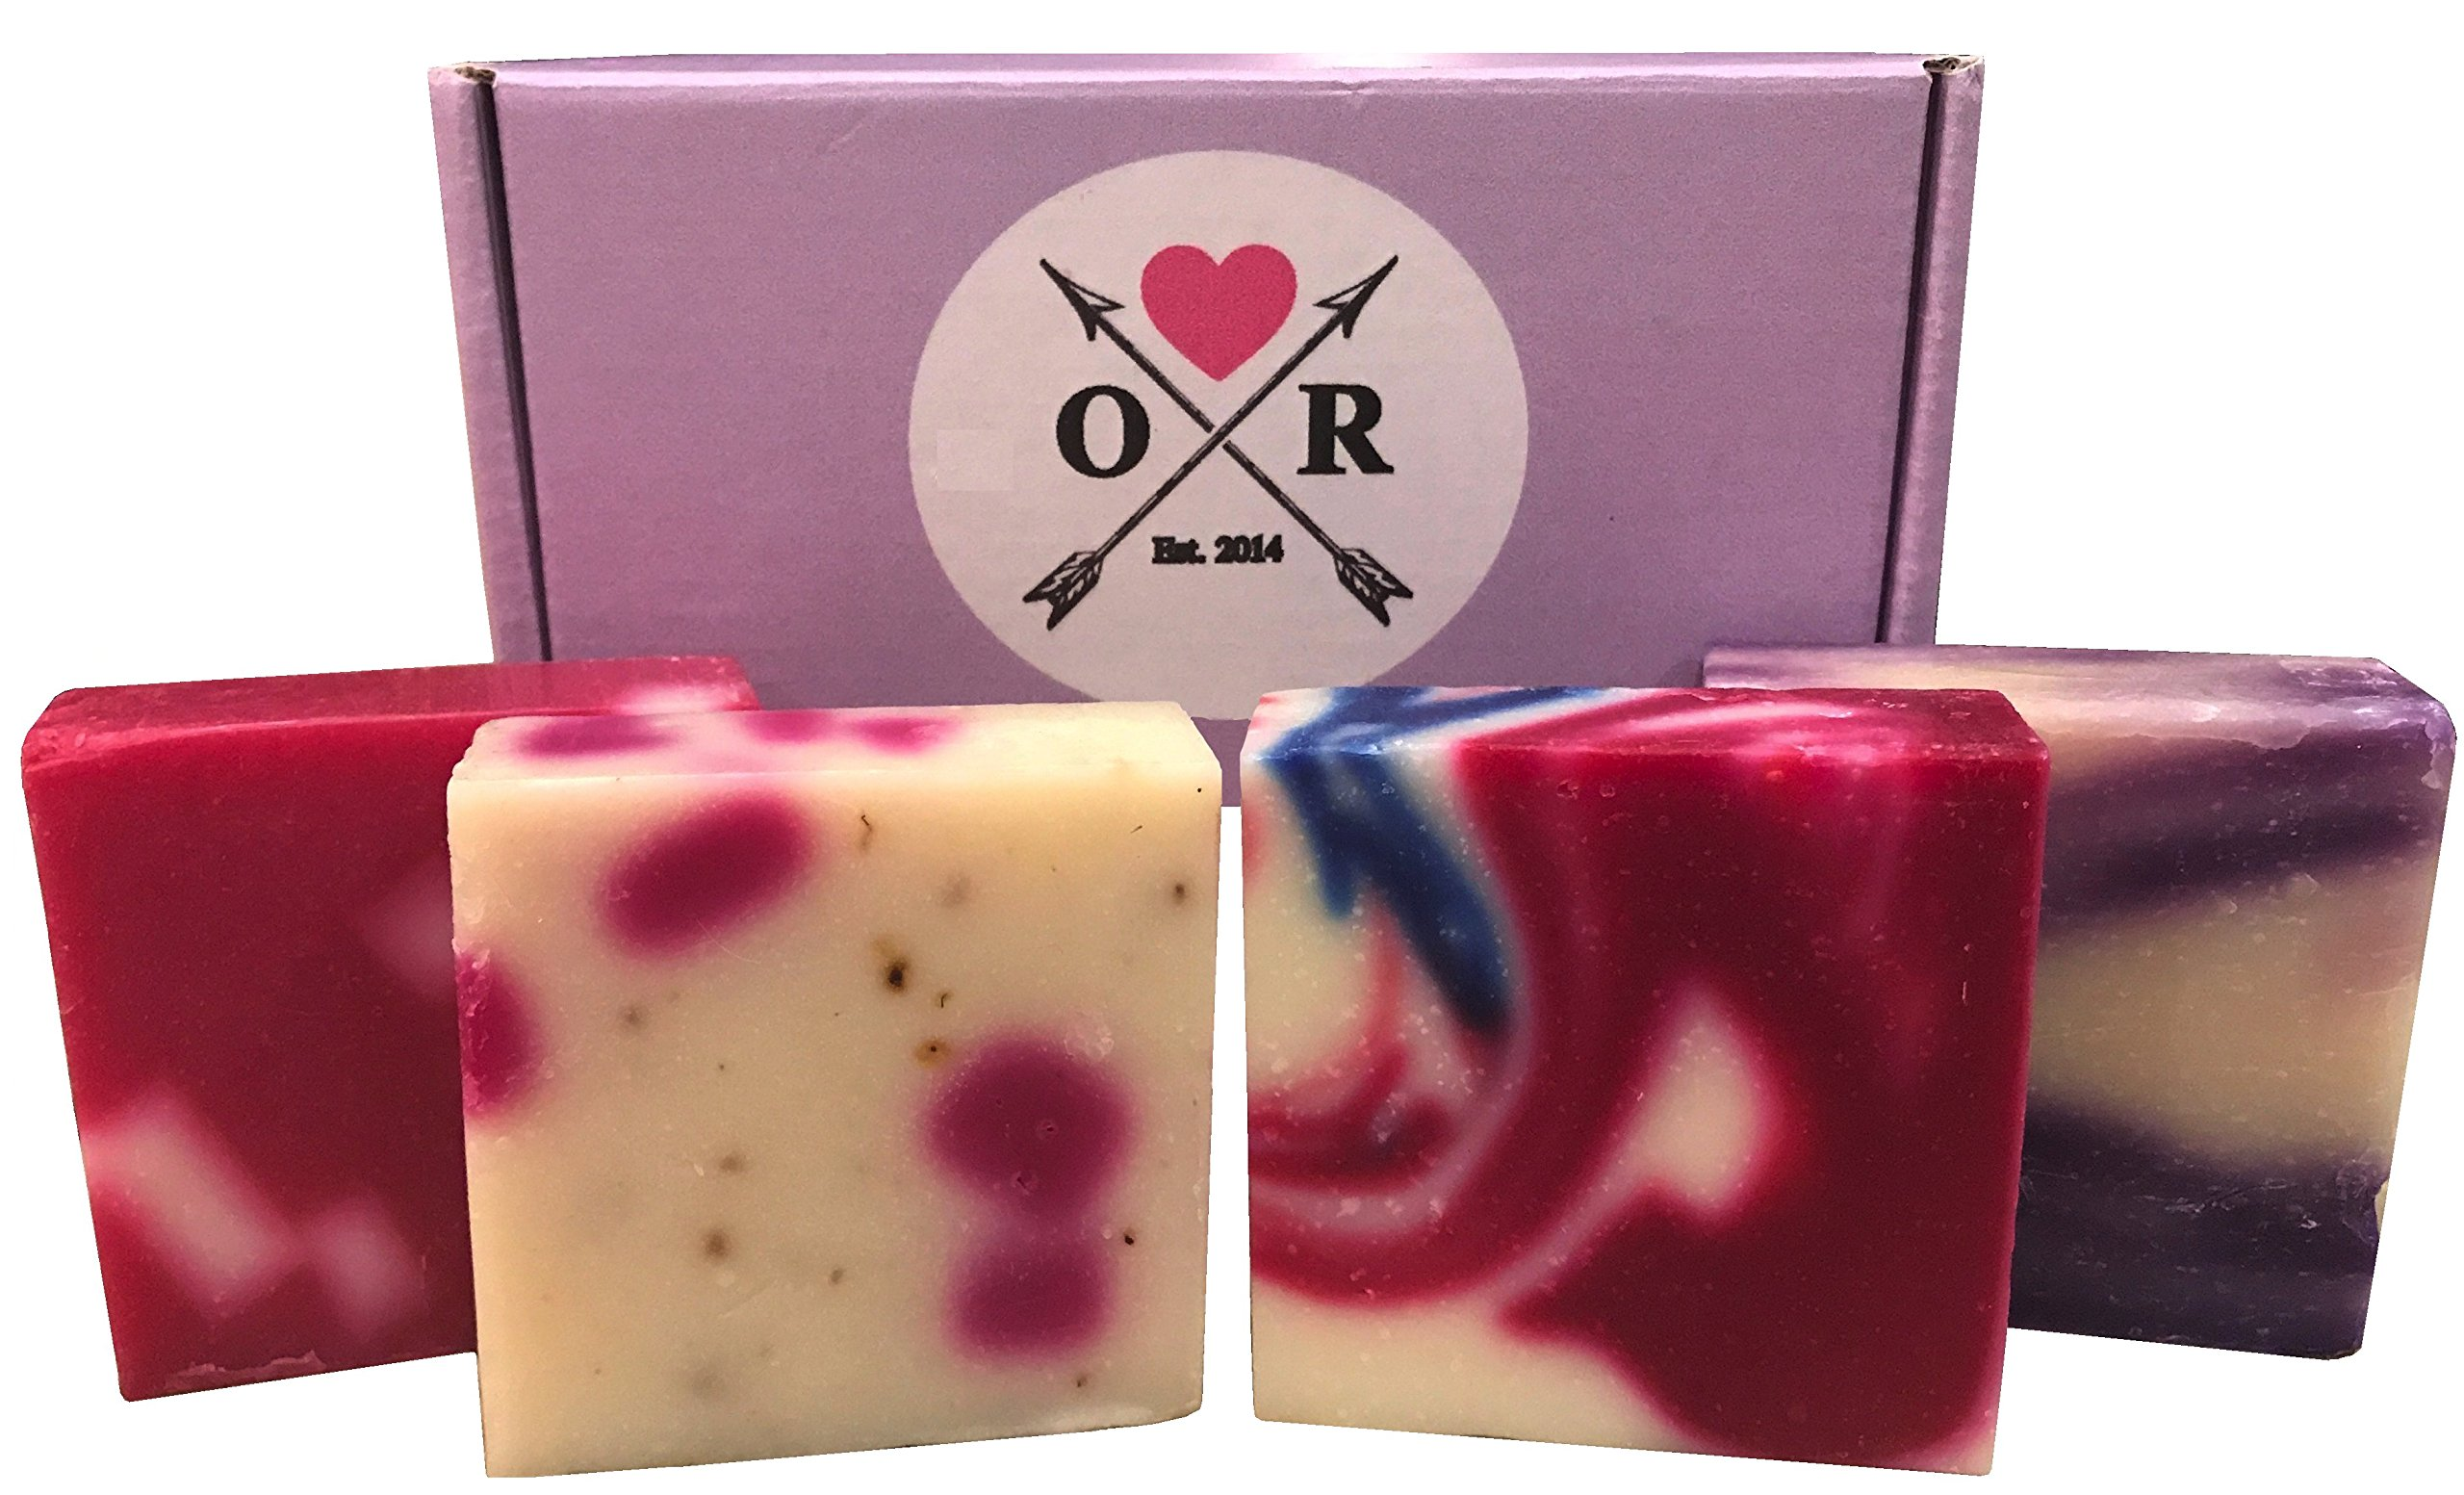 Oliver Rocket Handcrafted Soap Gift Set (4 bar set) - 5 ounces each - Face & Body Soap - Lavender, Petal Dance, Wild Passion & Raspberry Rush - Made in USA with Organic Shea Butter